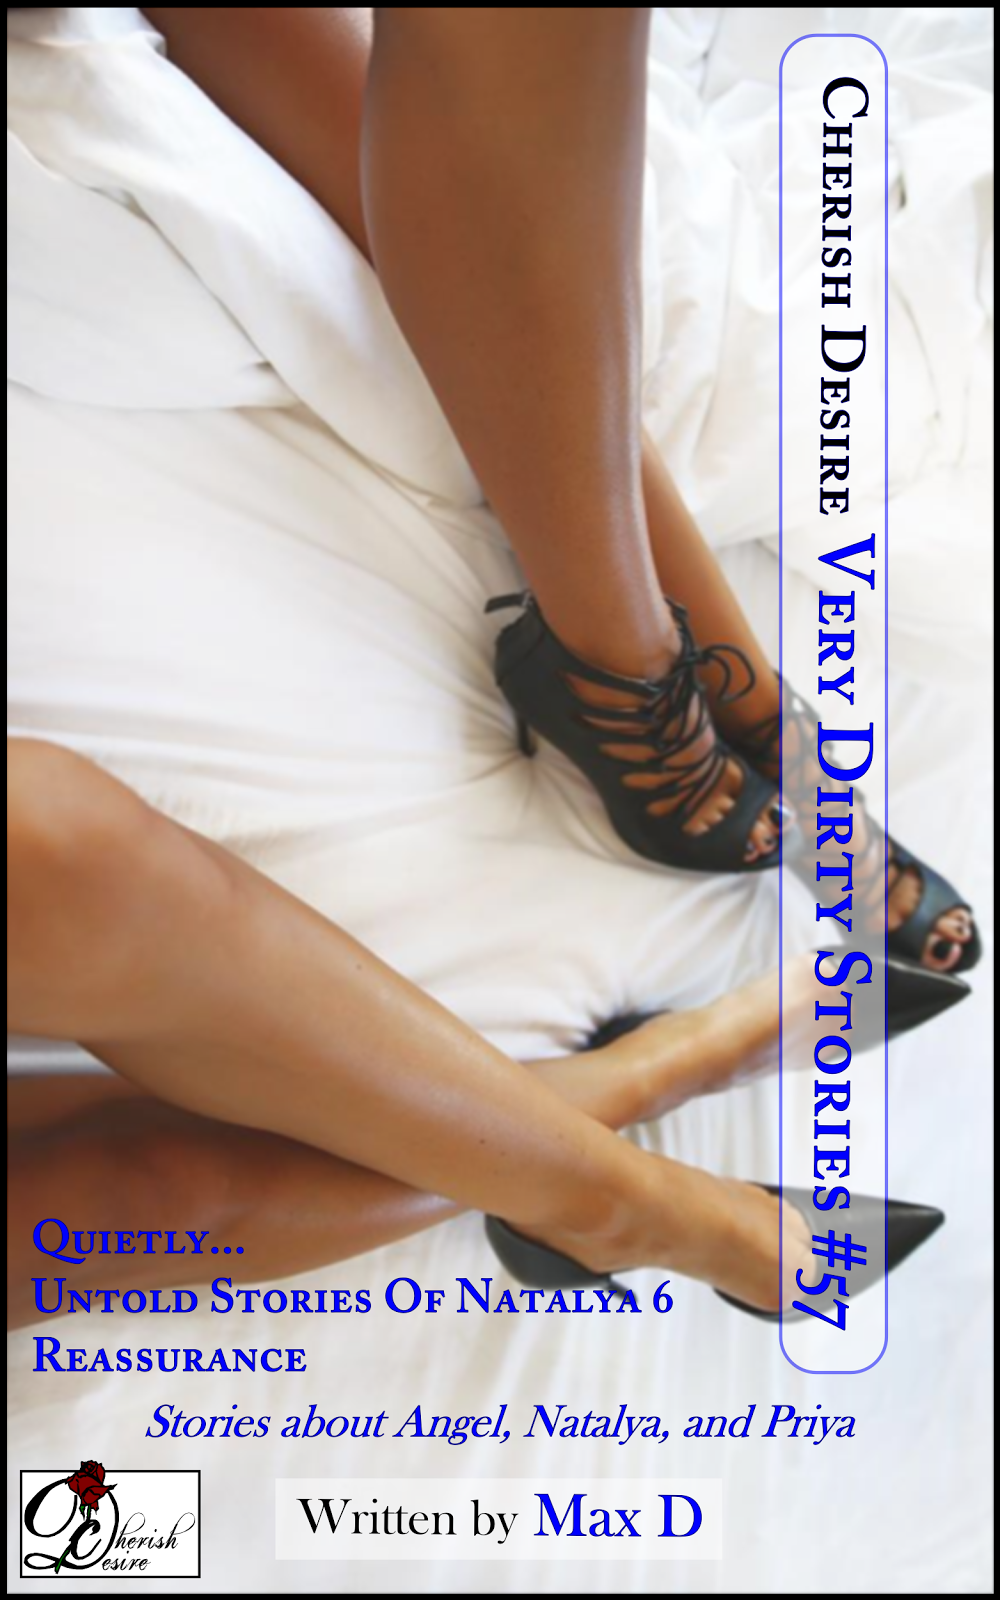 Cherish Desire: Very Dirty Stories #57, Max D, erotica